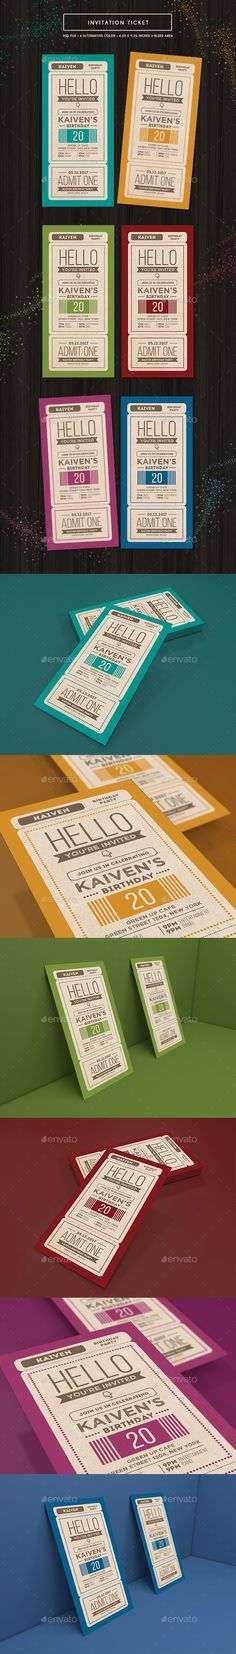 Multipurpose Event Ticket | Ticket template, Event ticket and ...